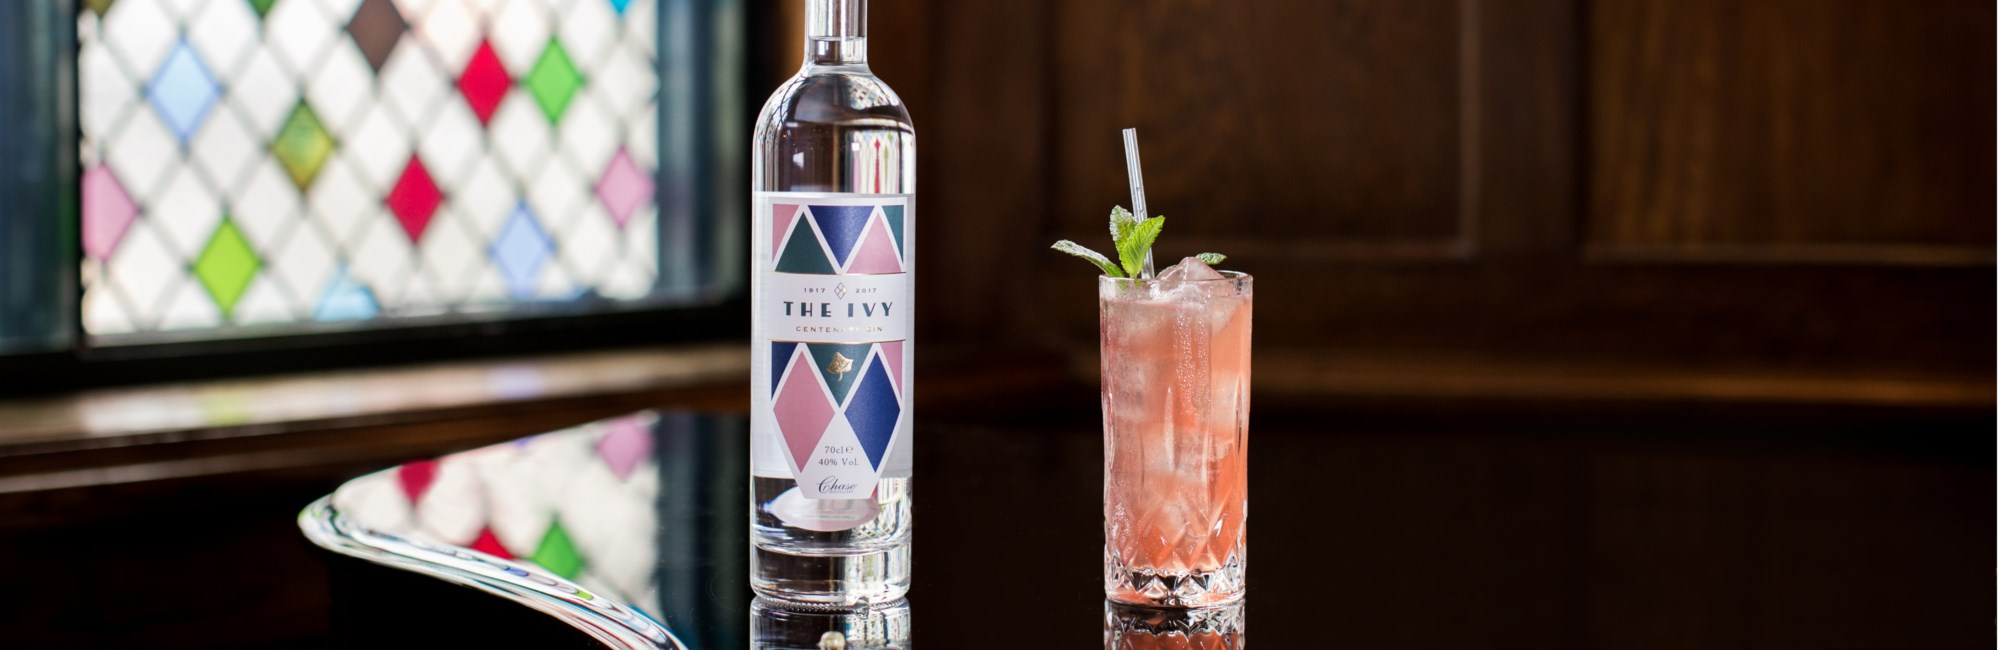 the ivy centenary gin 2